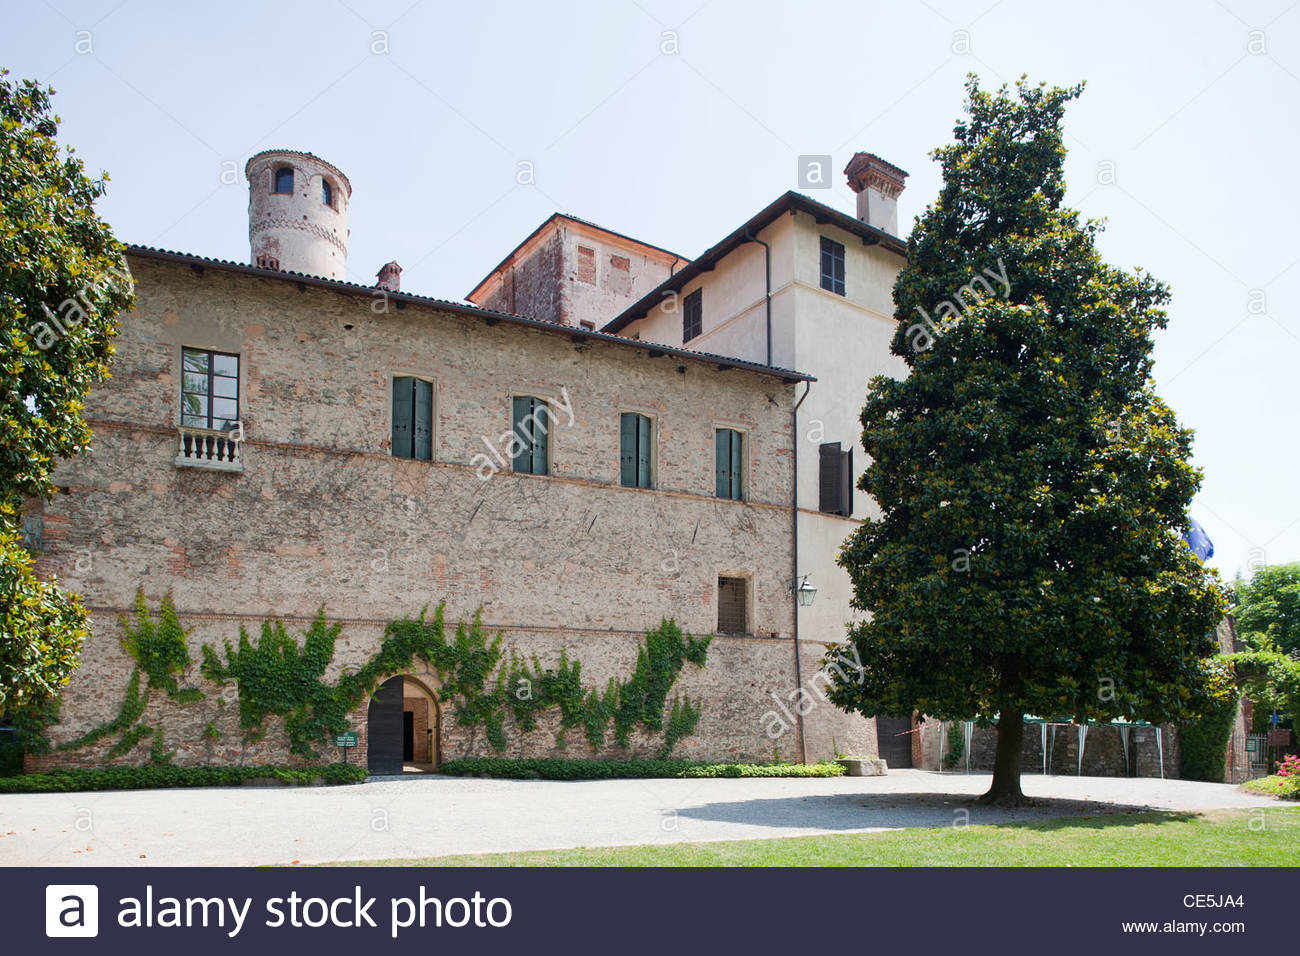 castle of the manta,langhe,piemonte,italy,europe Stock Photo